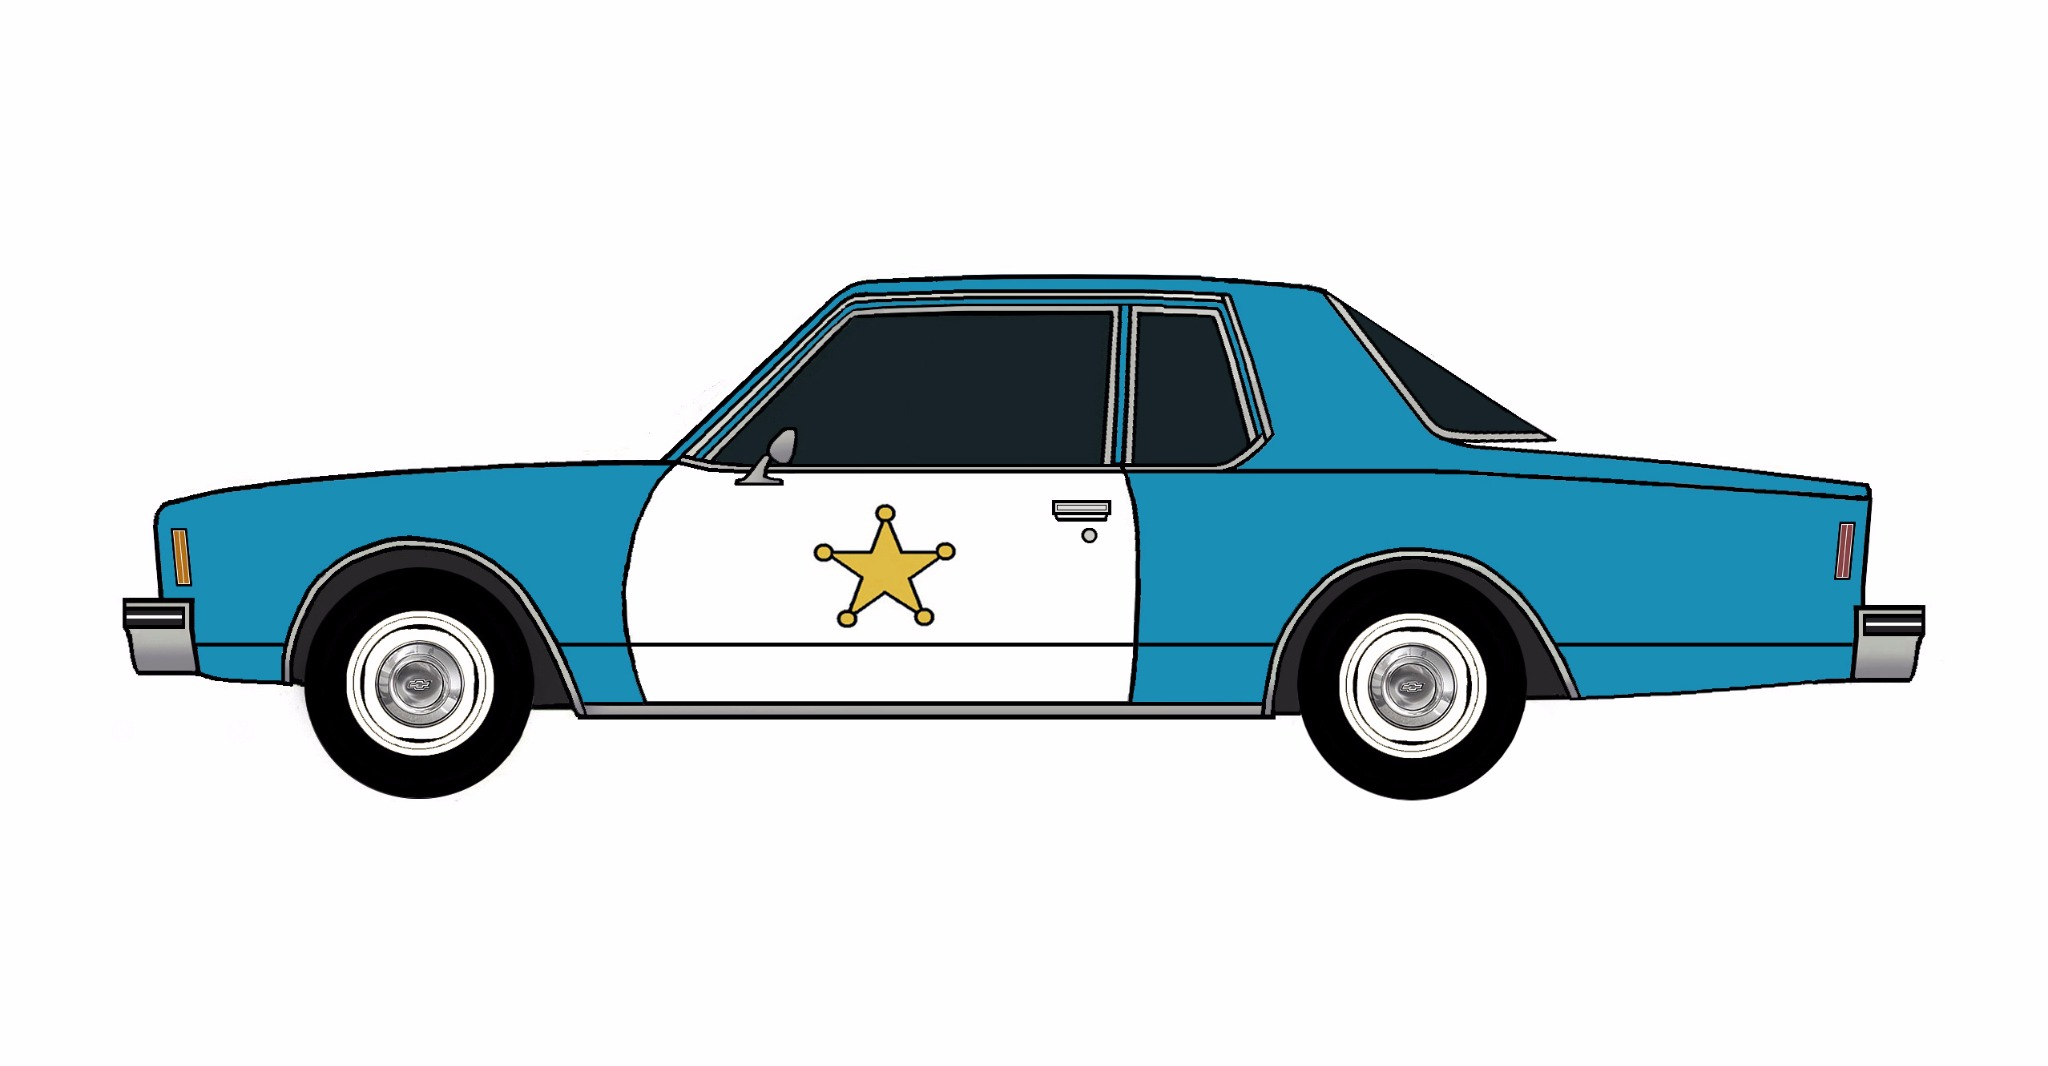 1977 Chevy Impala Police Coupe SEA BLUE